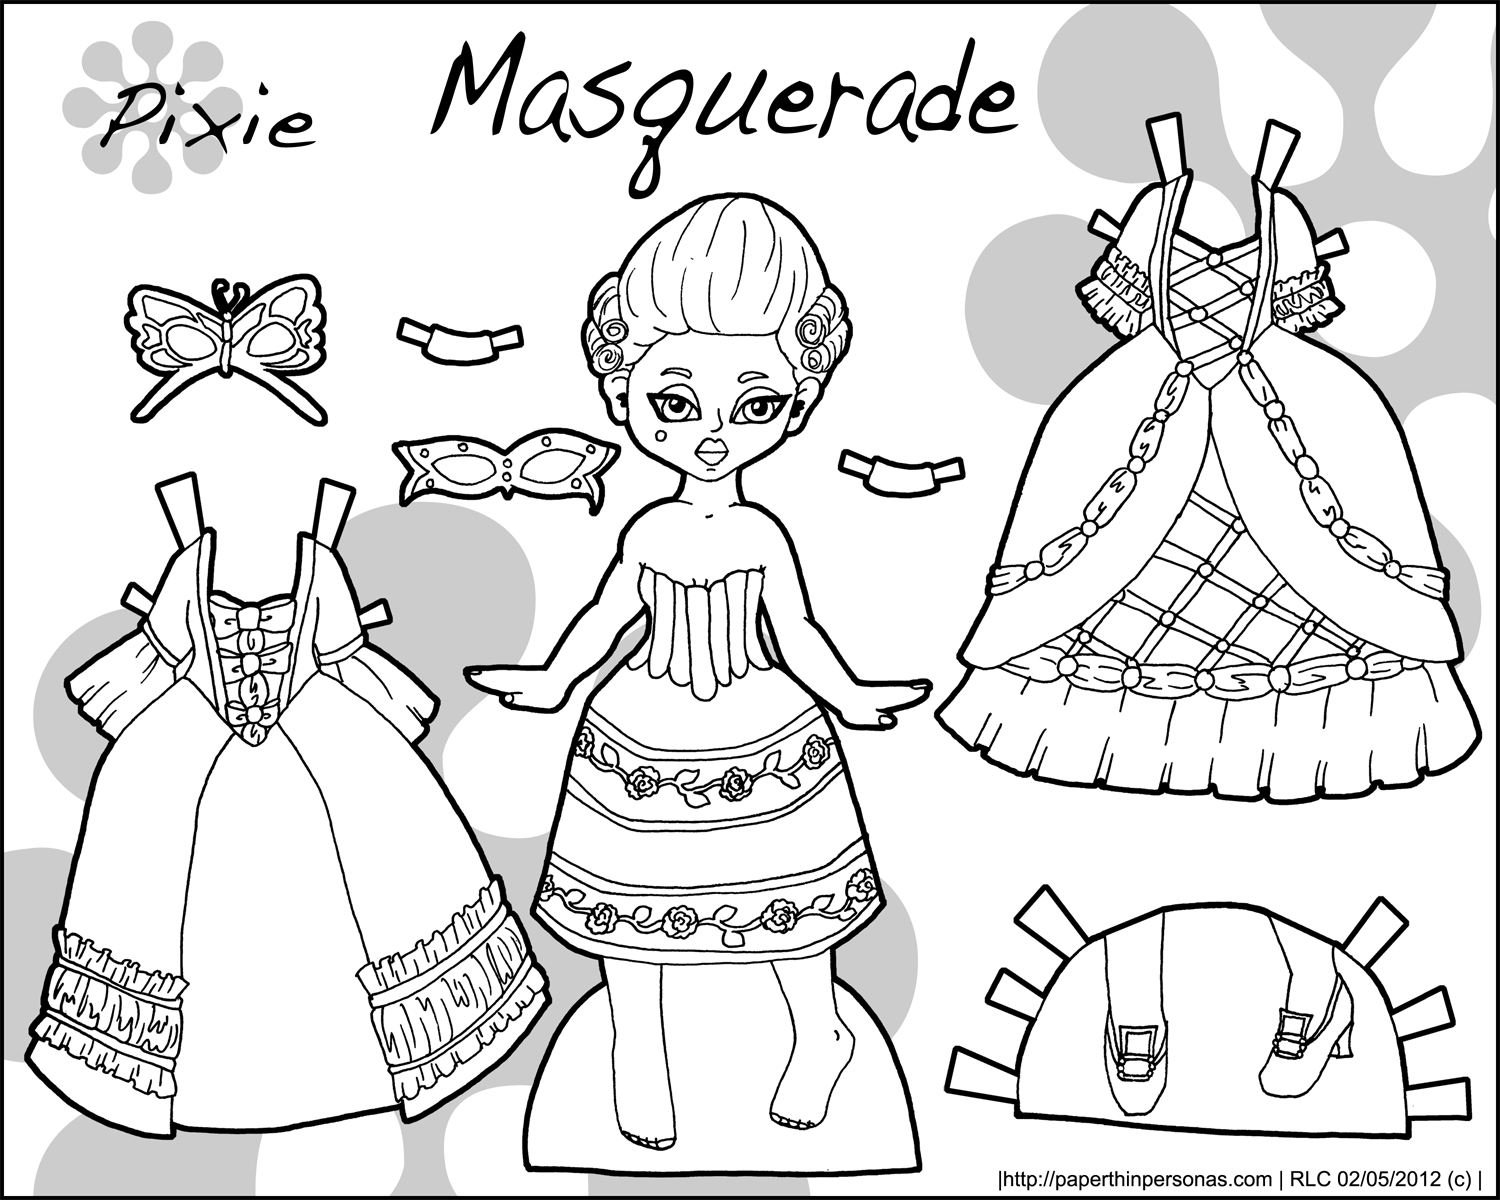 pixies printable paper dolls in black and white dolls paperdolls pinterest paper dolls. Black Bedroom Furniture Sets. Home Design Ideas